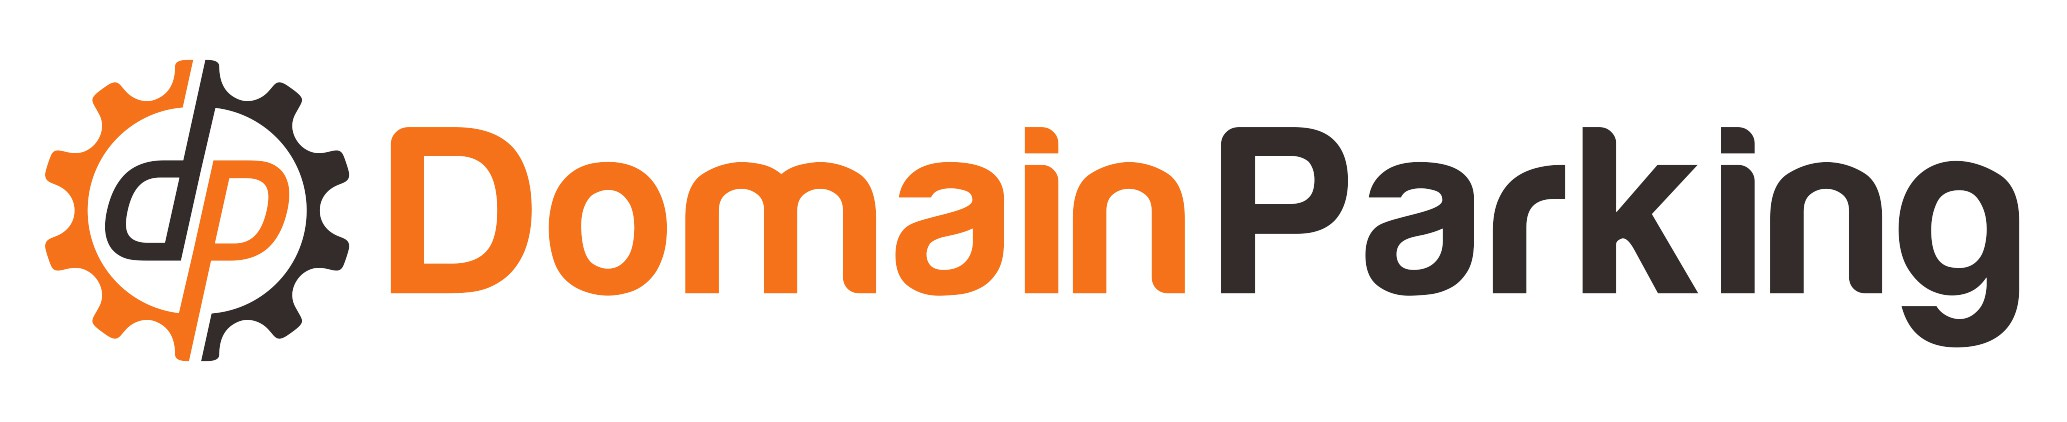 New logo for DomainParking.com  website that will launch soon.